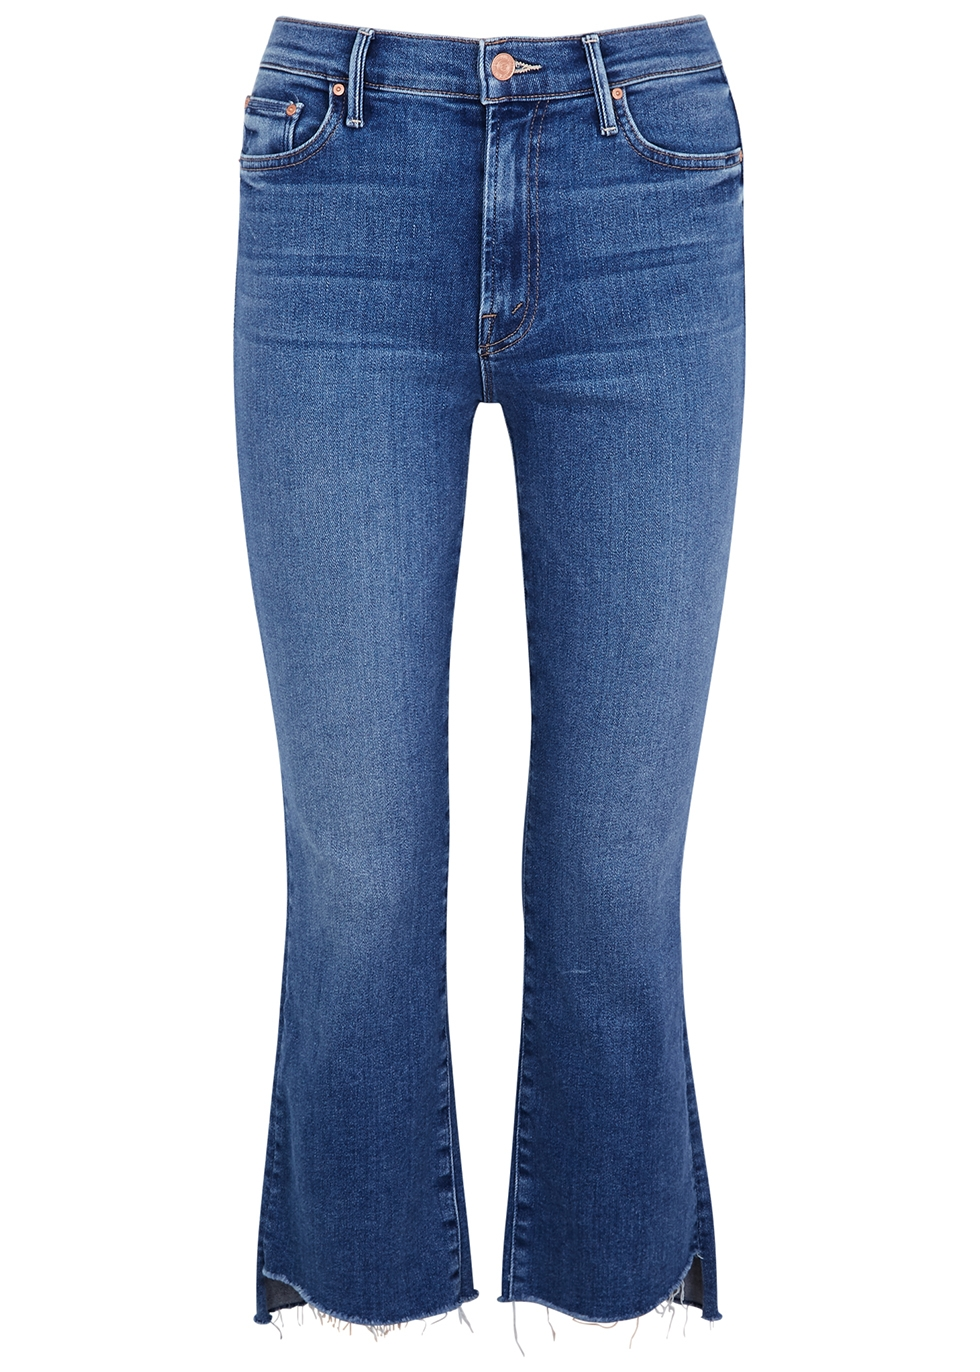 The Insider Crop Step Fray blue jeans